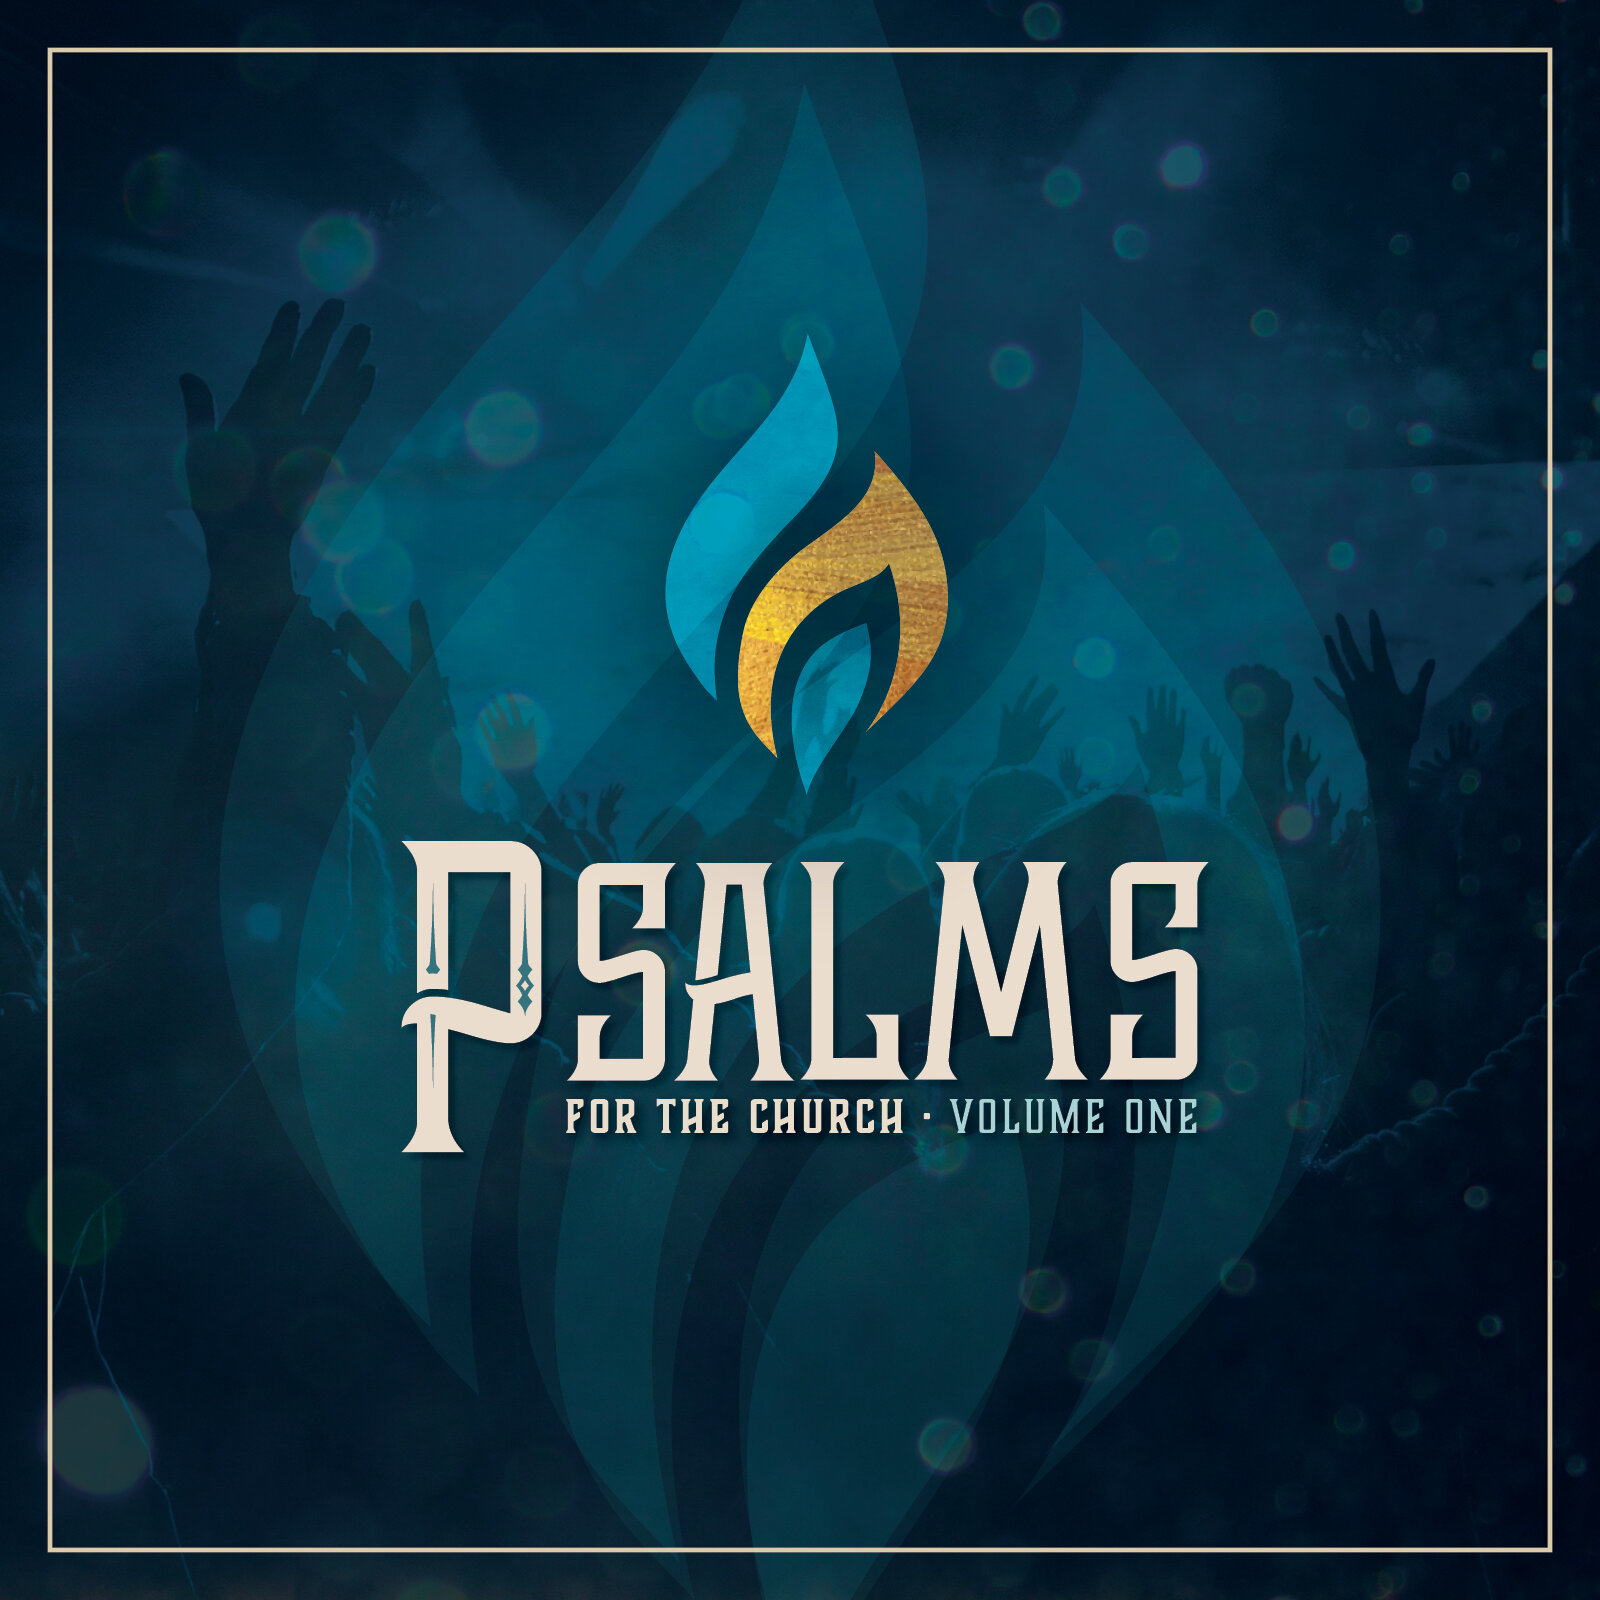 Click  here  to listen to Volume 1 of  Psalms for the Church  on Apple Music  Also available on Spotify, Pandora, and all major media platforms.